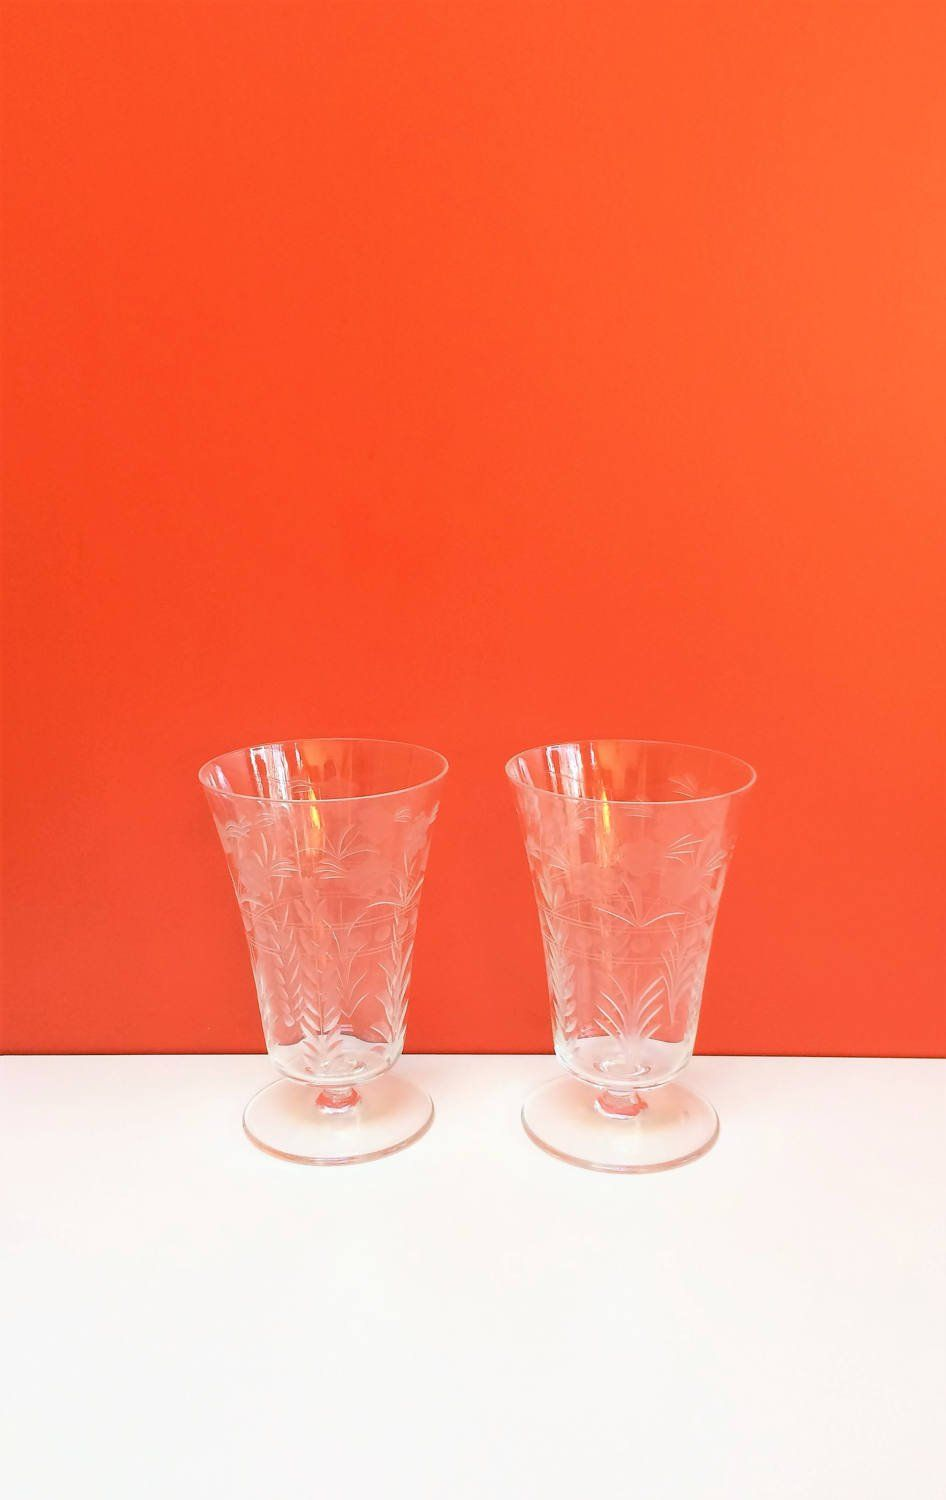 Vintage Etched Flower And Leaf Wine Goblets Set Of Two By Object9 On Etsy Etched Wine Glasses Wine Goblets Wine